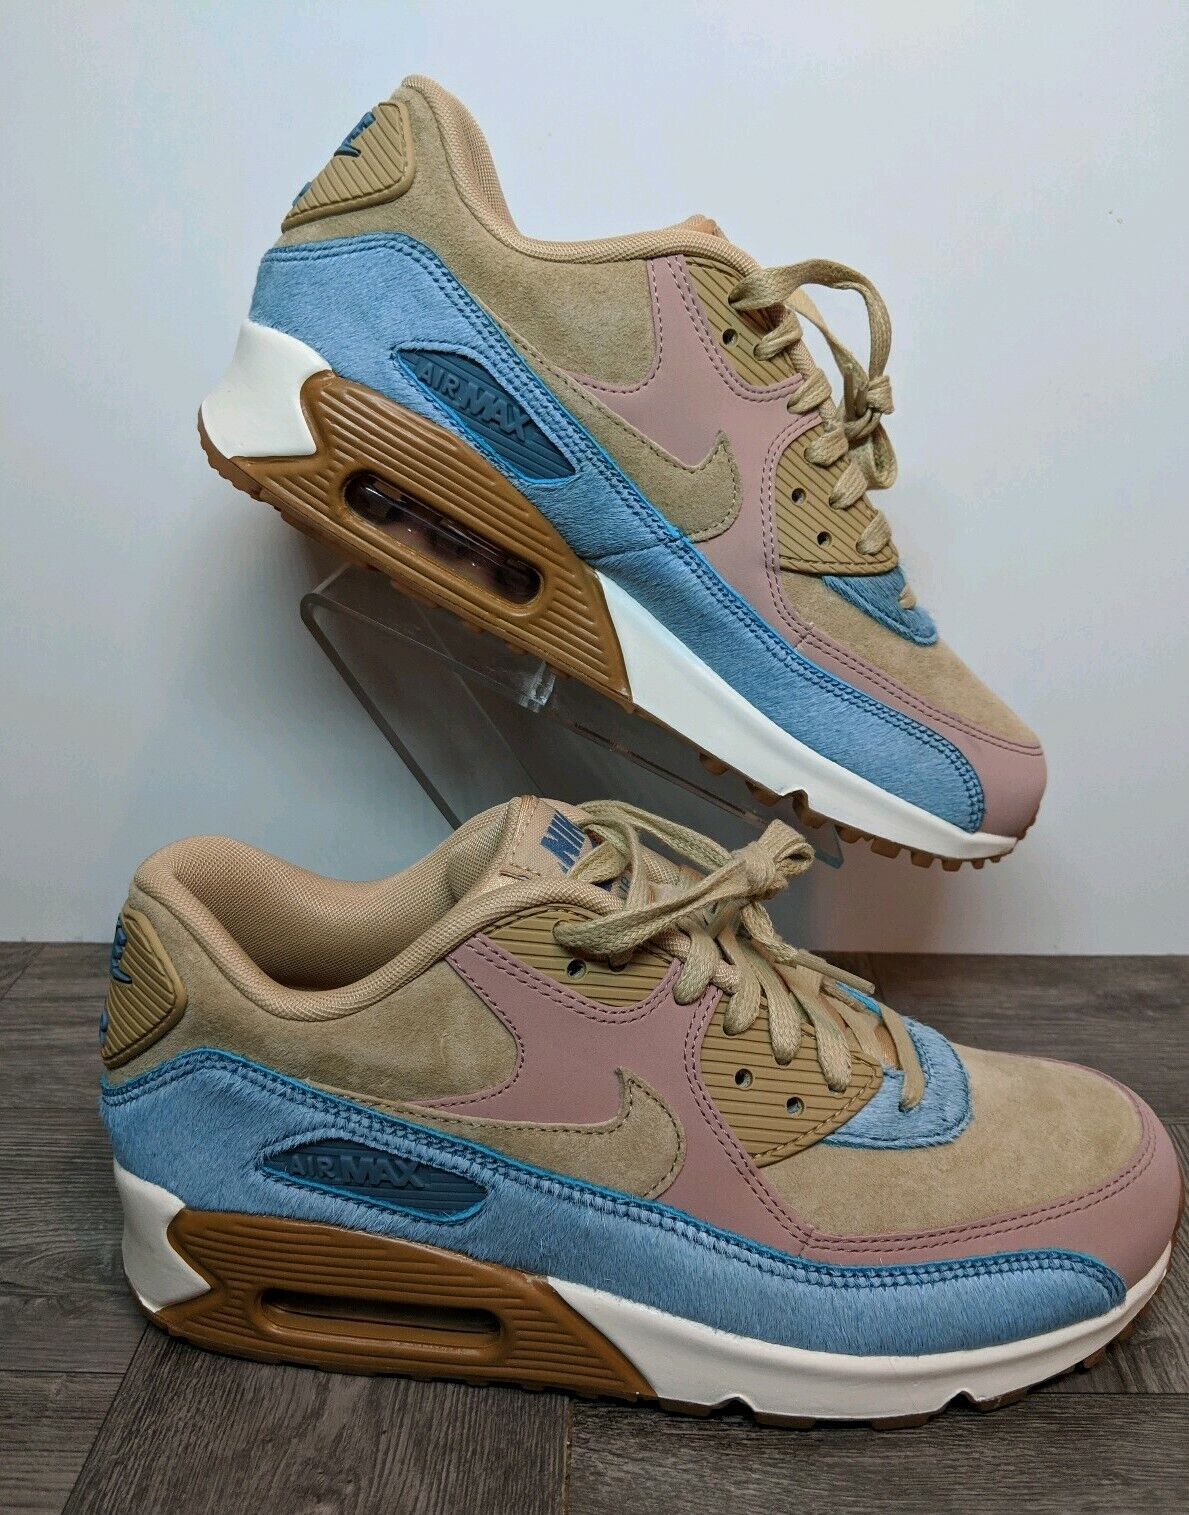 New Nike Air Max 90 LX Mushroom   Smokey bluee 898512-200 Women's shoes Size 6